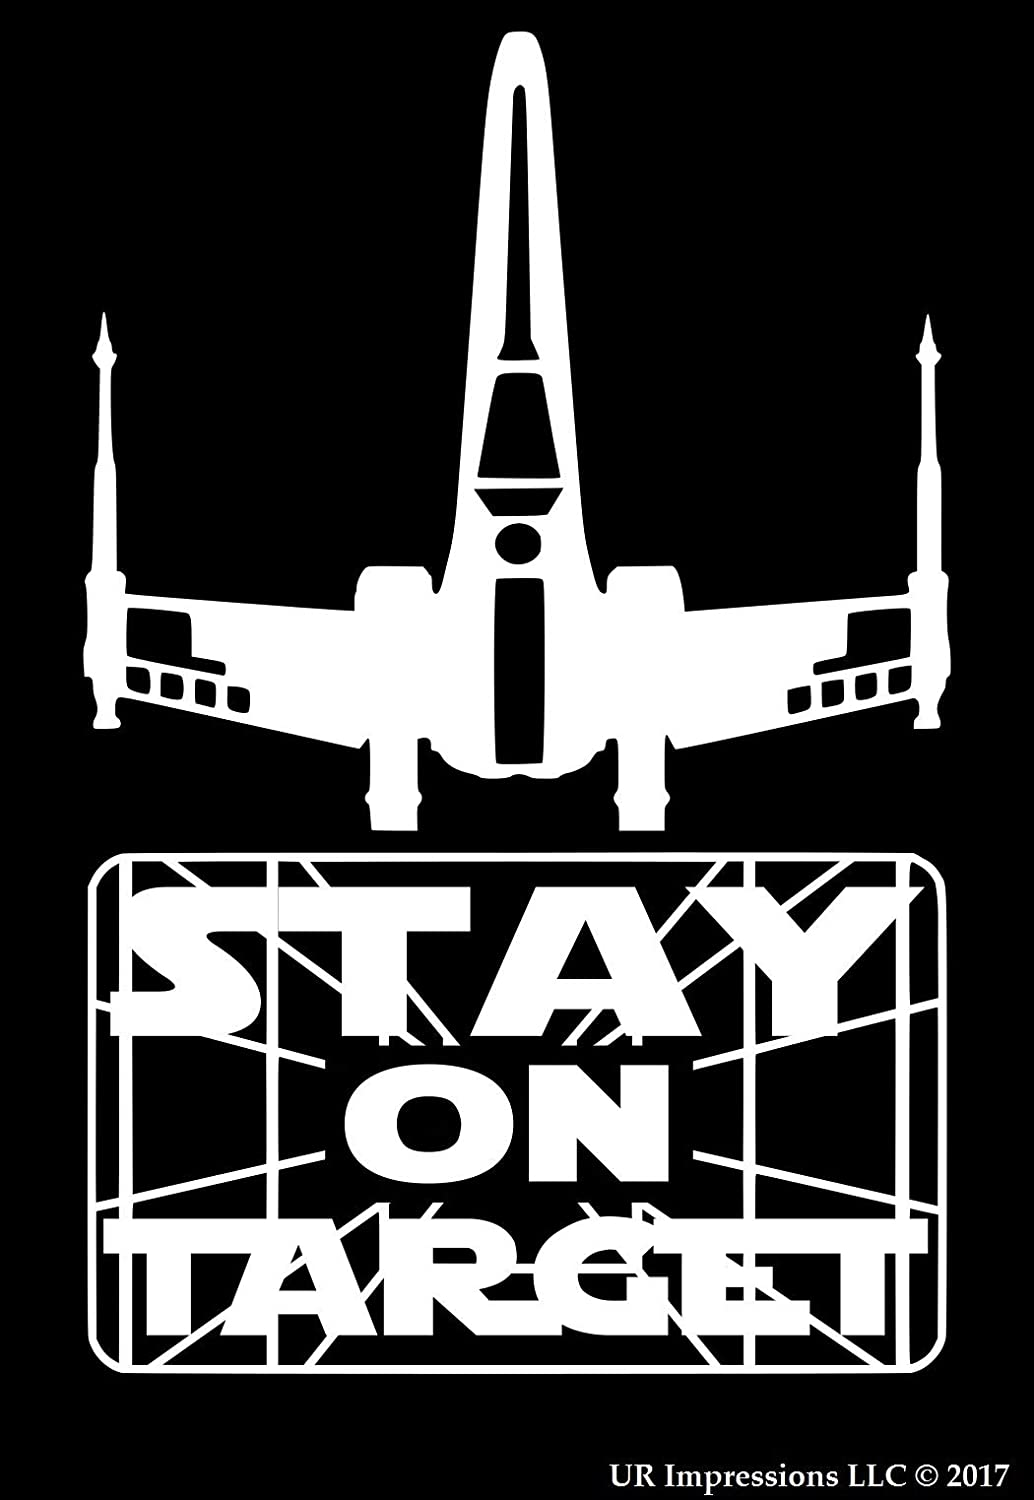 UR Impressions X-Wing Stay On Target Decal Vinyl Sticker Graphics for Cars Trucks SUV Vans Walls Windows Laptop|White|7 X 4.4 Inch|URI461